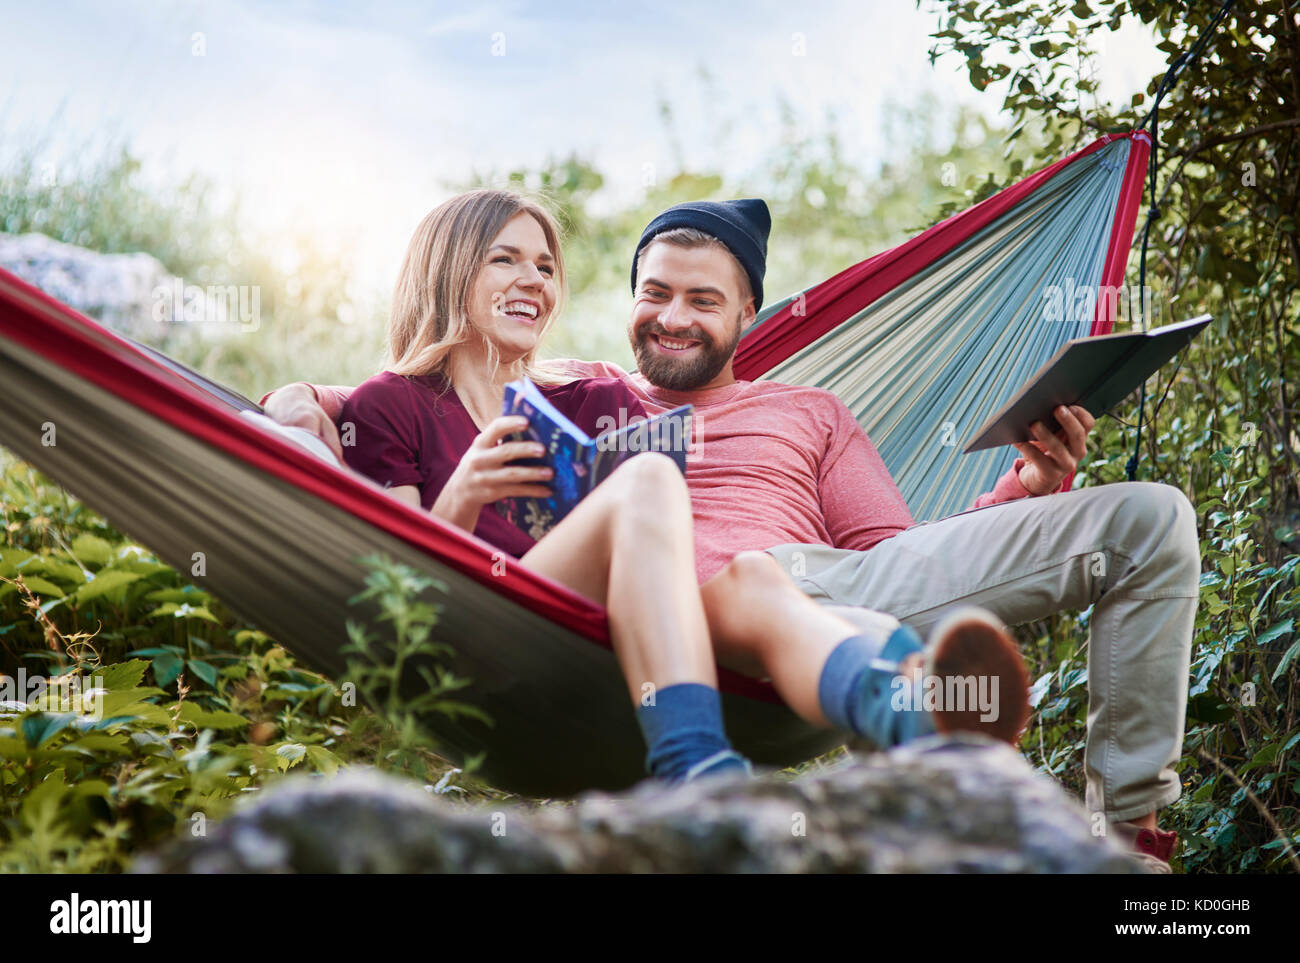 Couple relaxing in hammock, smiling, Krakow, Malopolskie, Poland, Europe - Stock Image